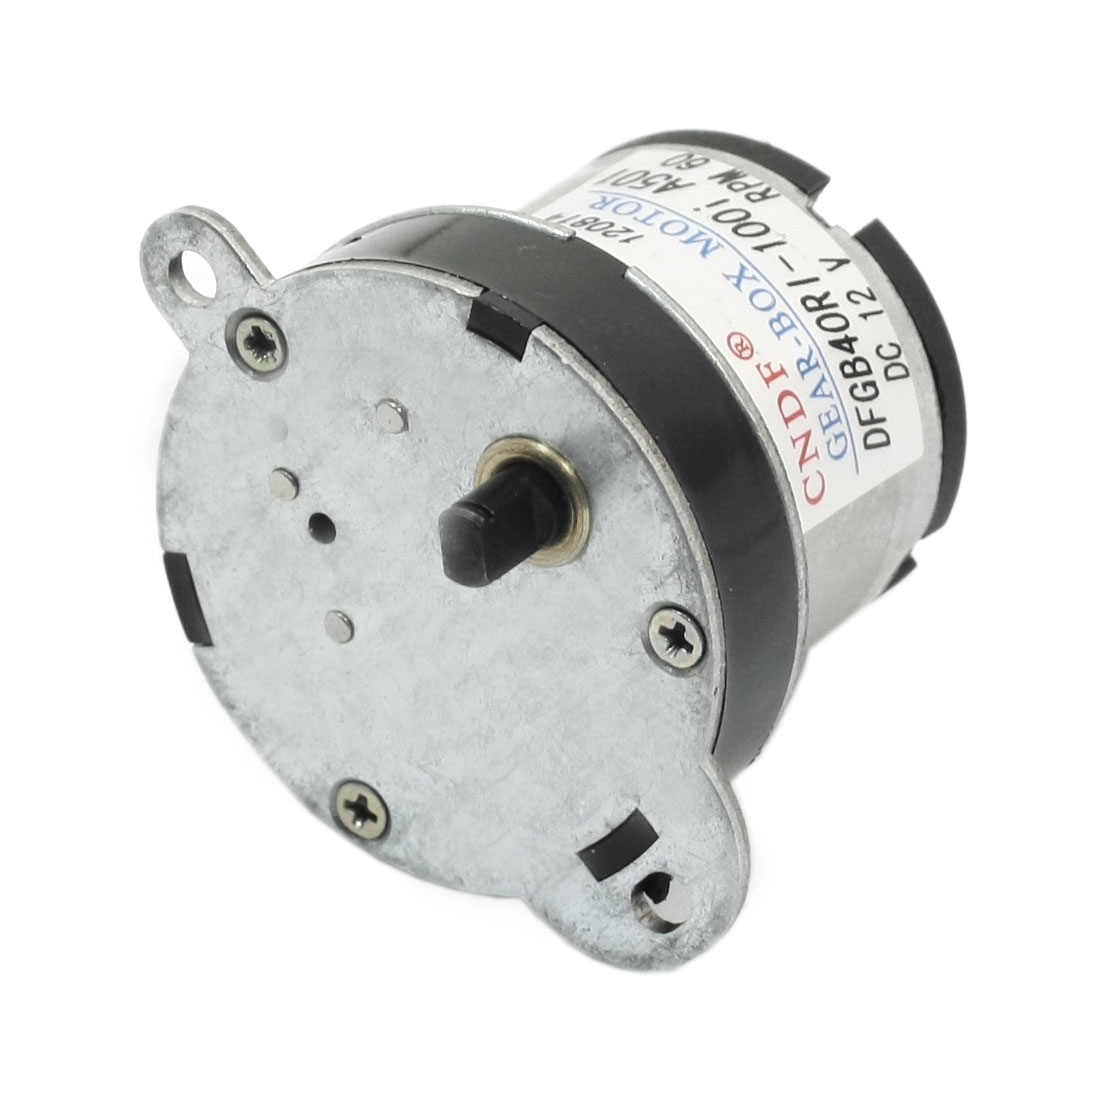 DC12V 60RPM 45mm Height Metal Plastic Gearbox Motor